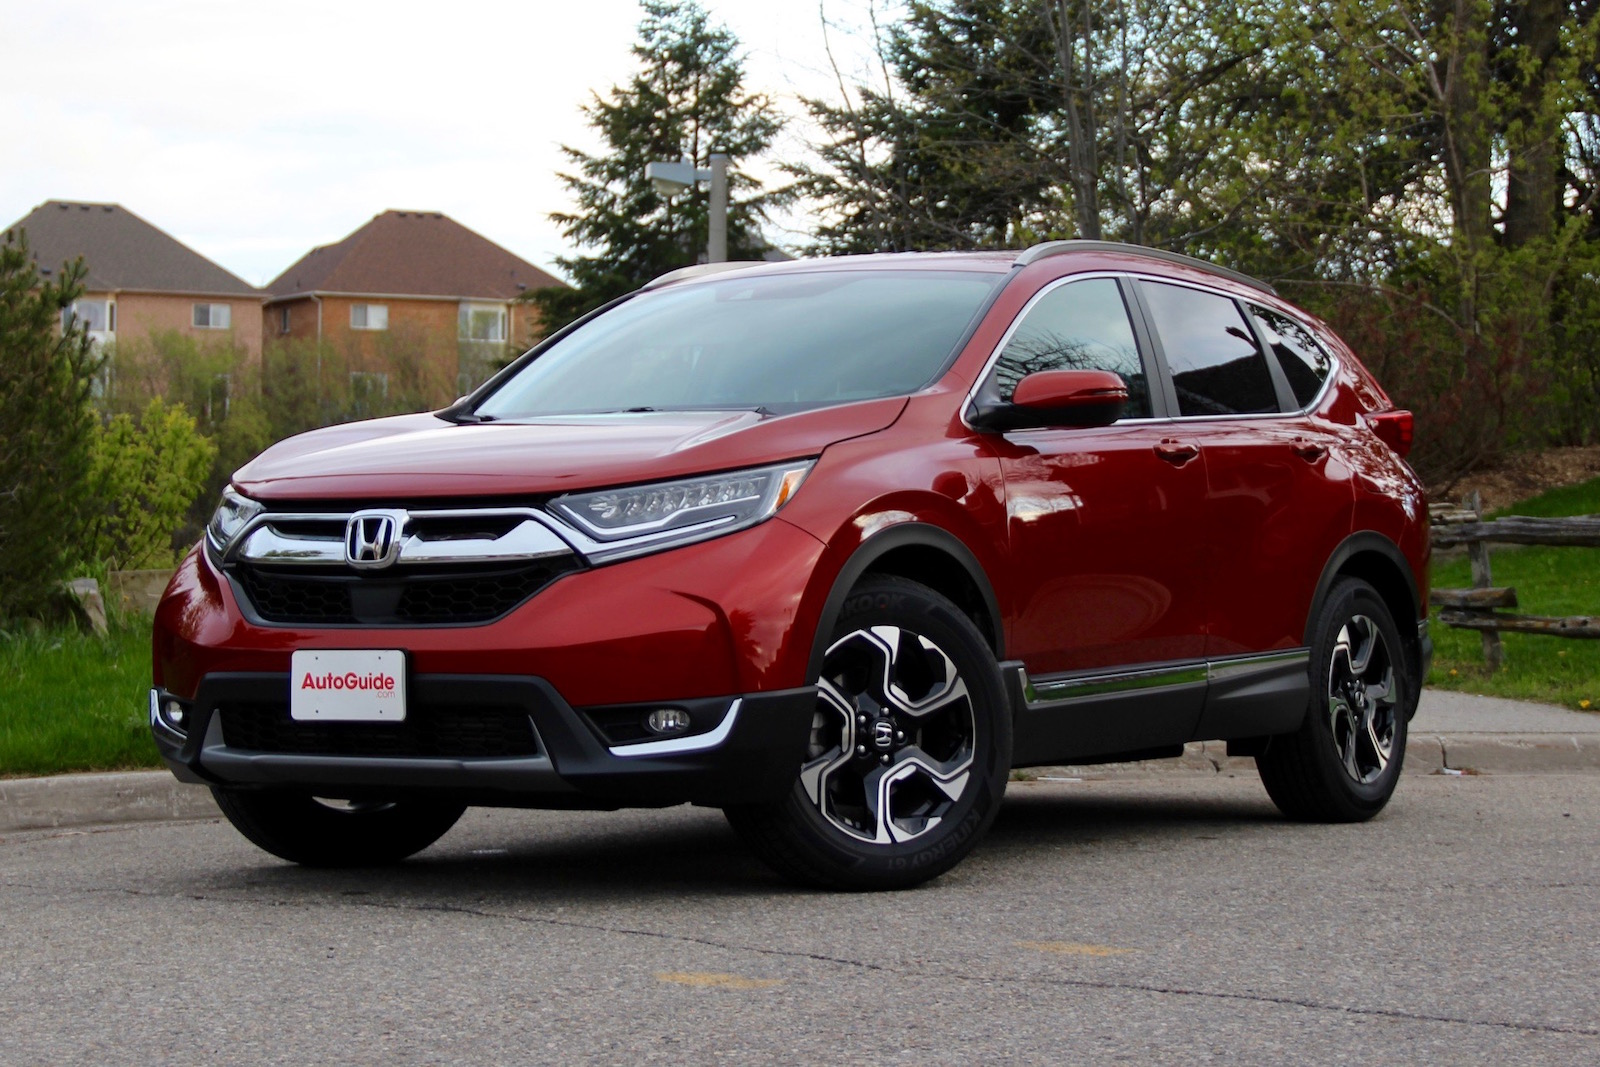 Used Honda Hrv >> 2017 Honda CR-V Long-Term Test Update: Road Trip Edition - AutoGuide.com